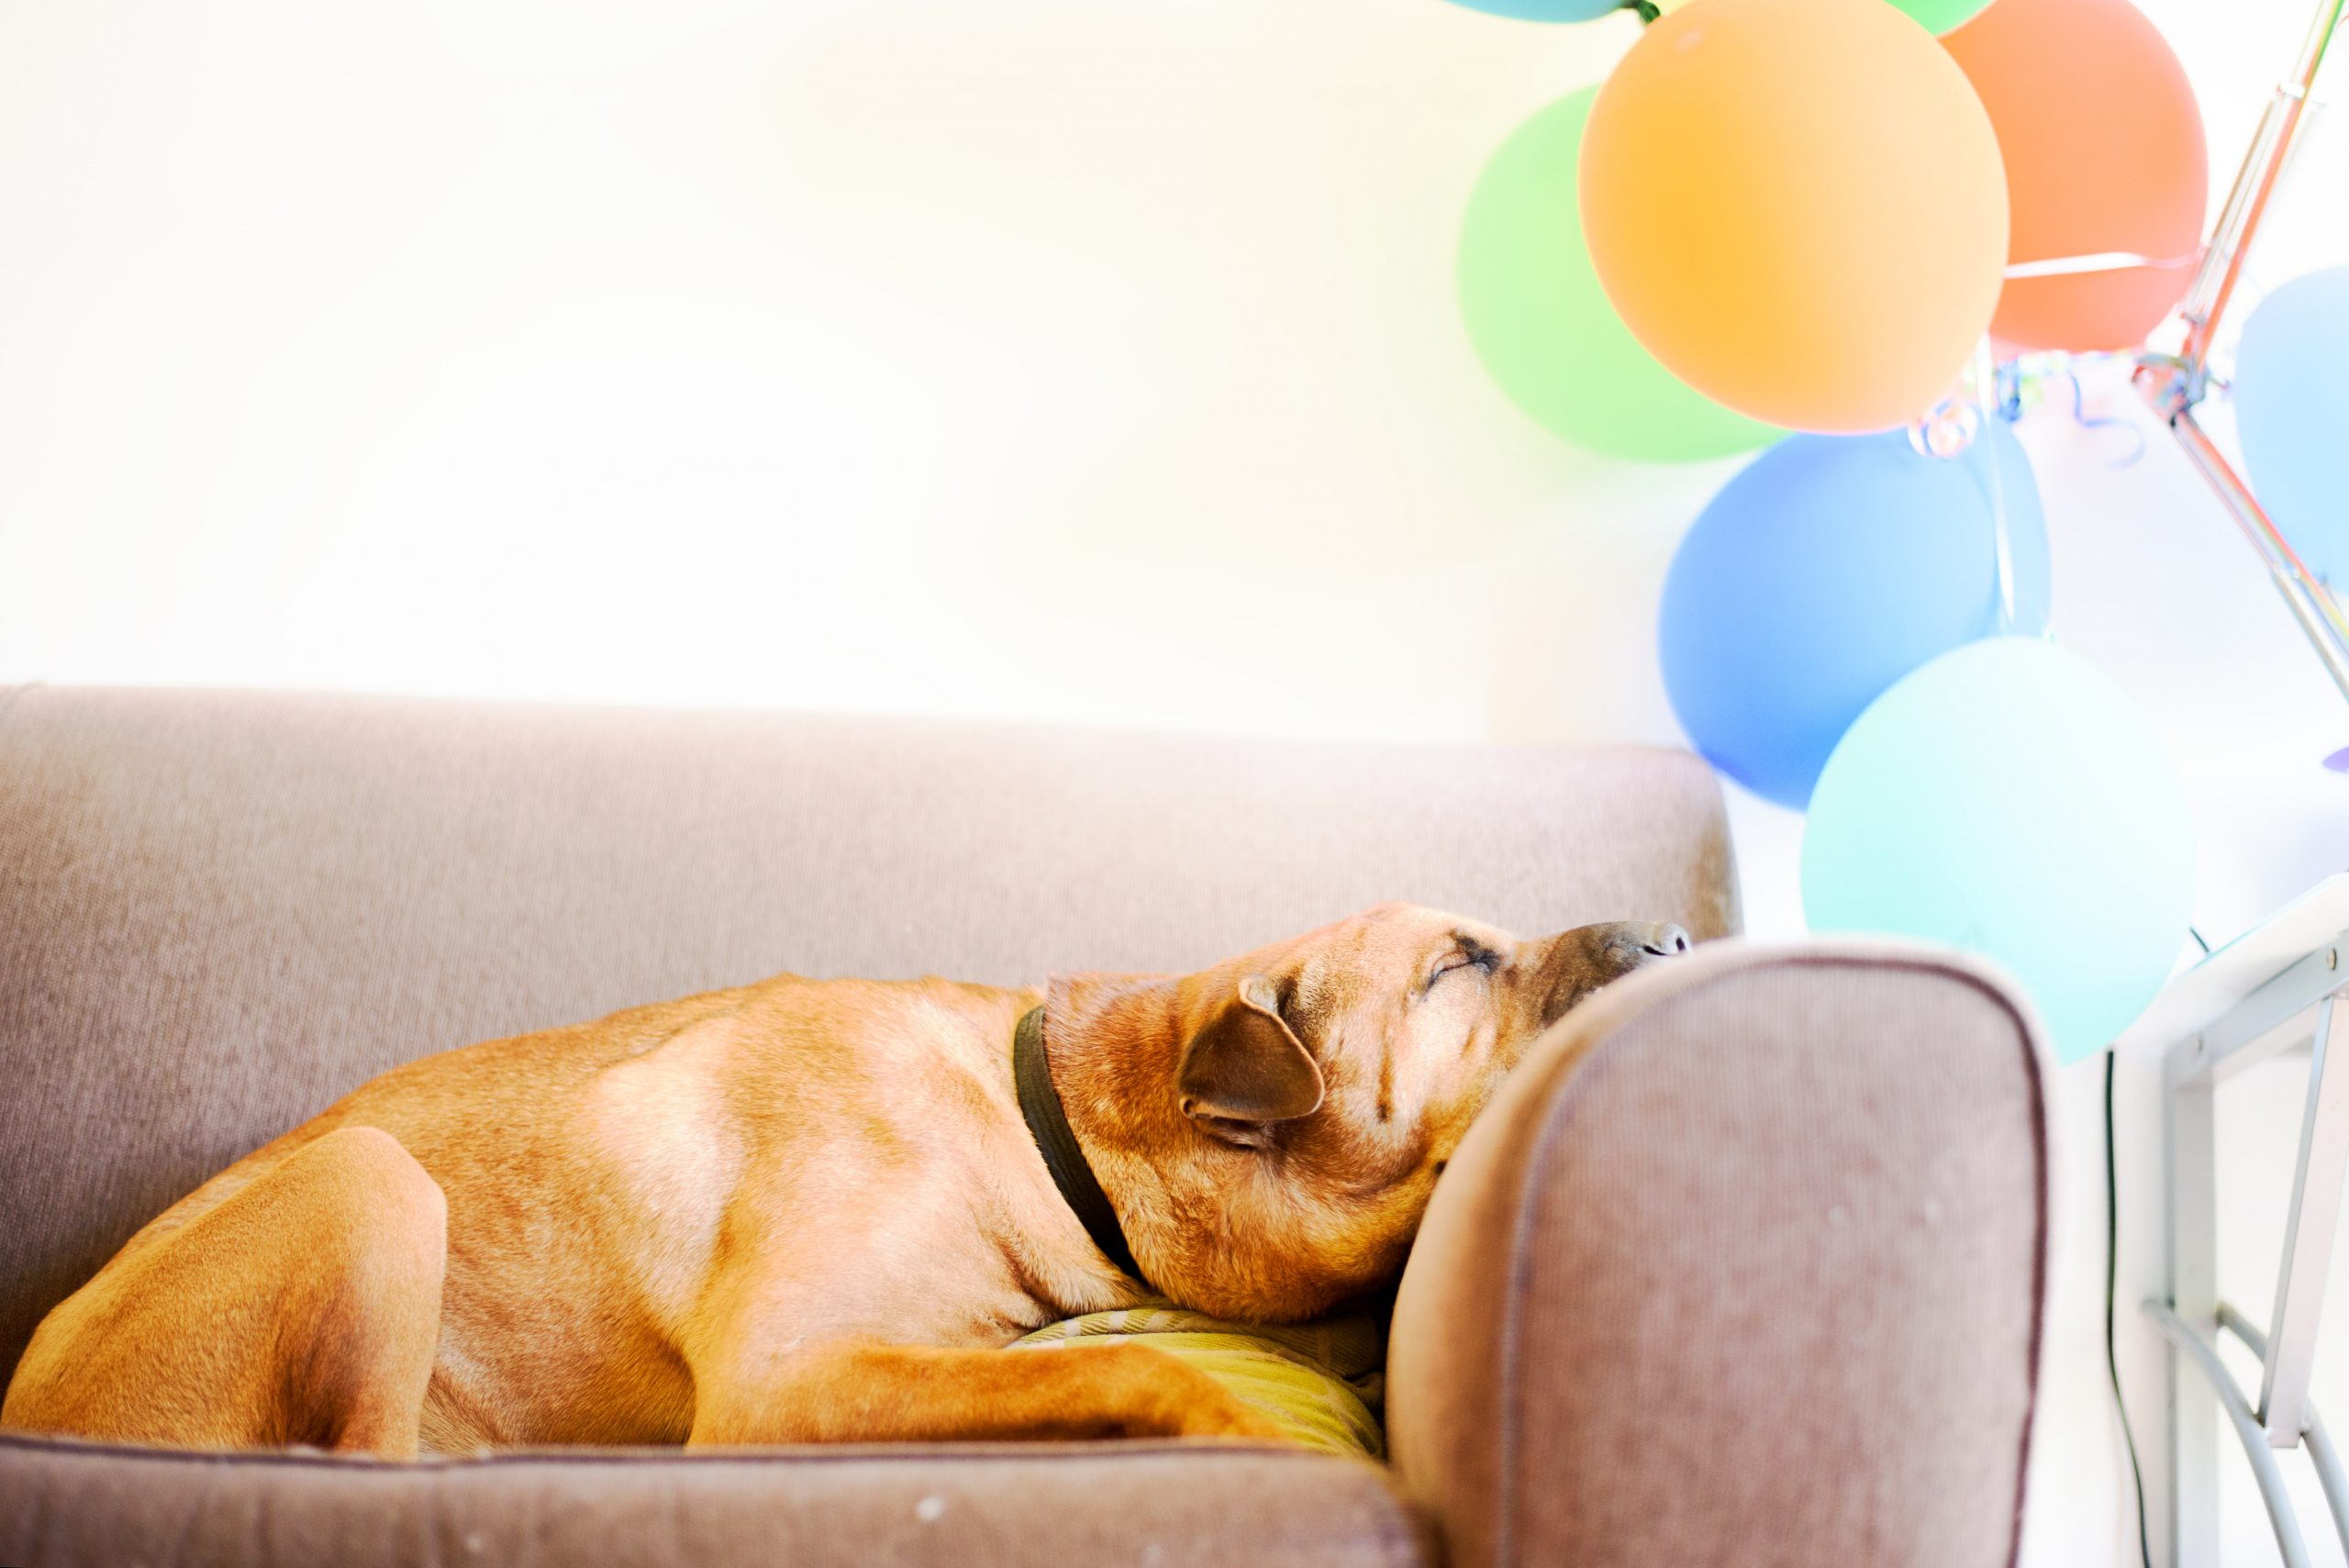 Puppy sleeping on a sofa with balloons in the background